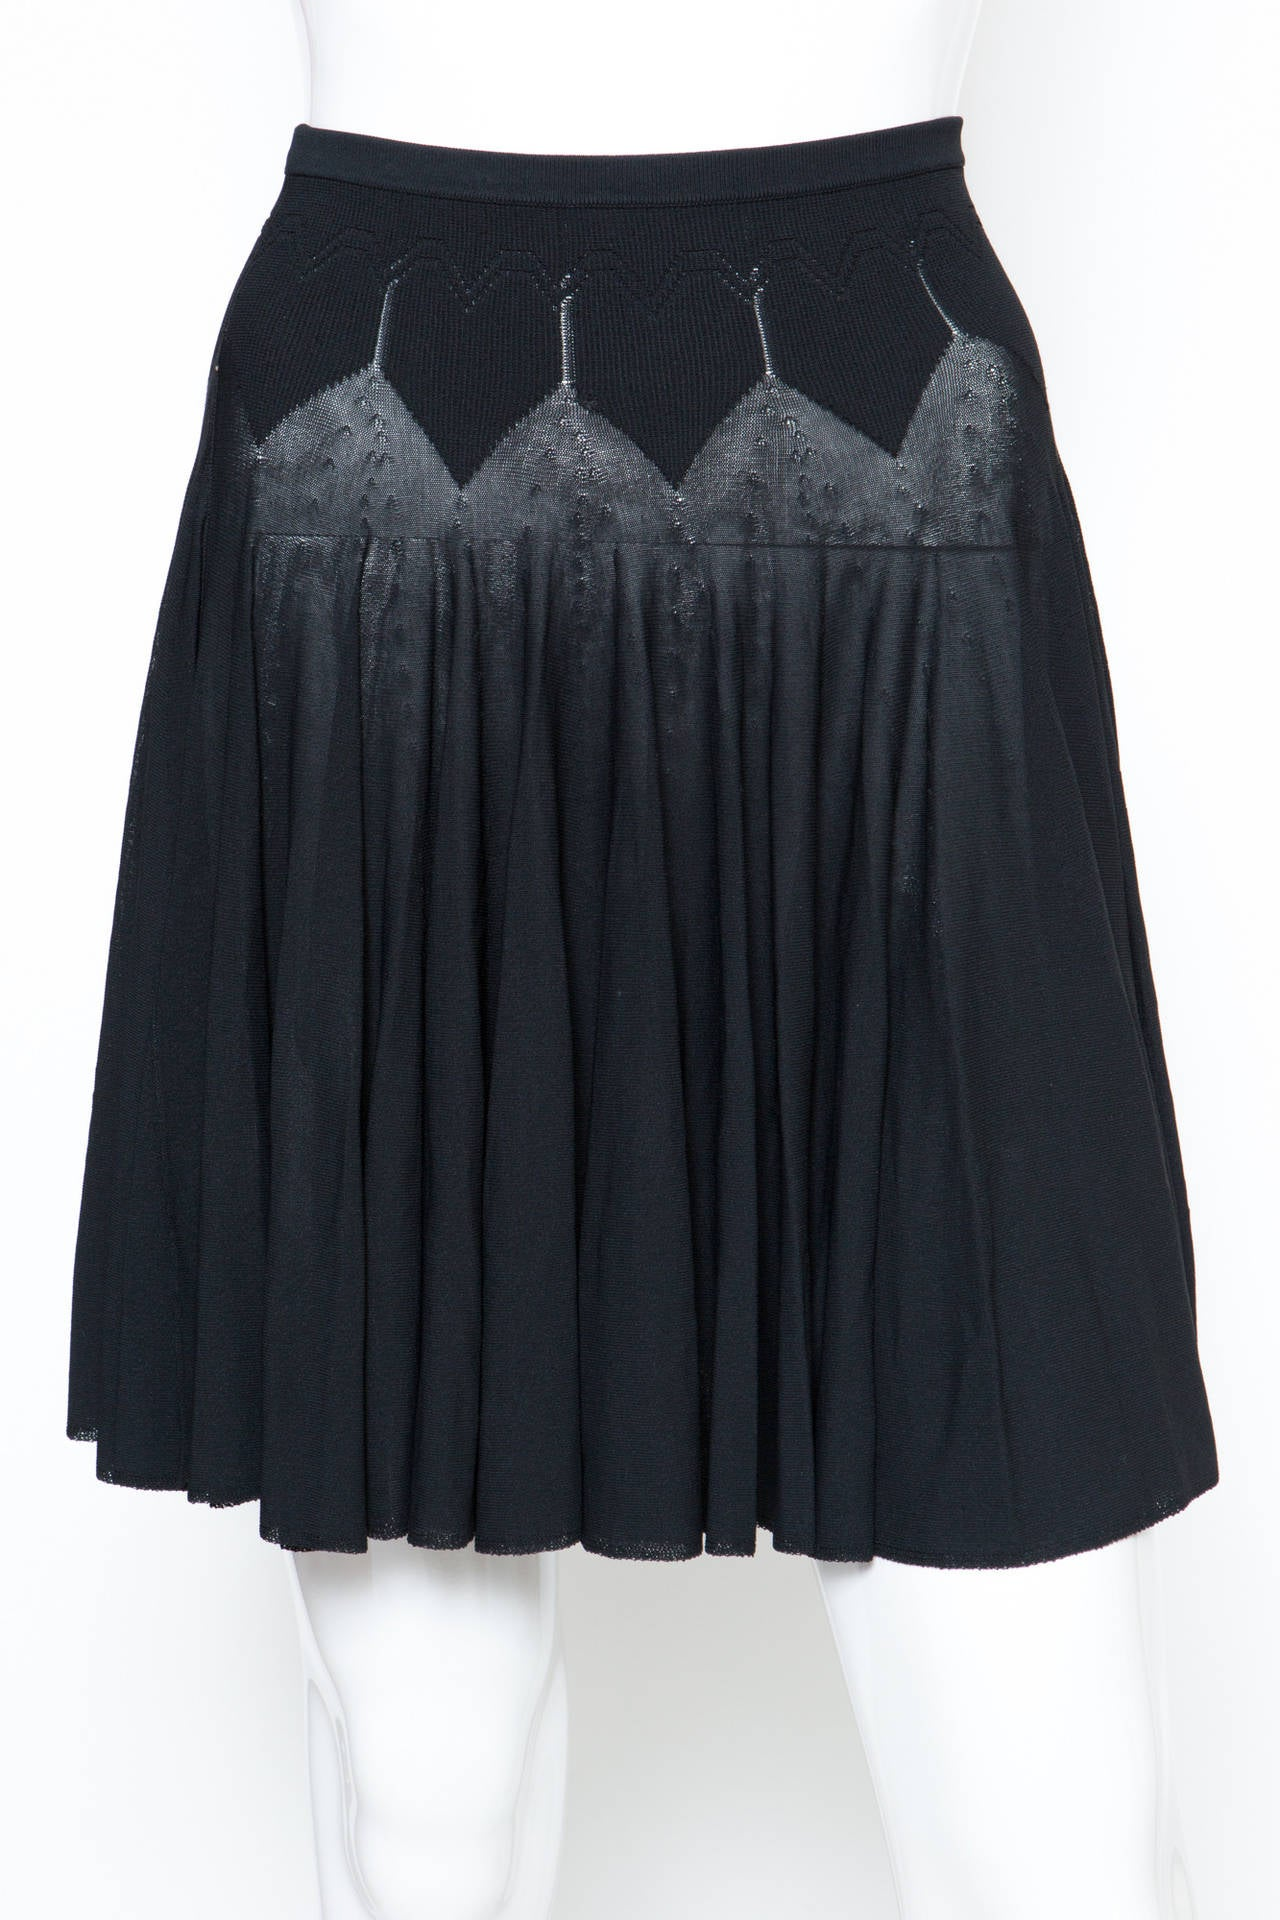 Vintage Alaia Dress s Alaia Black Iconic Mini